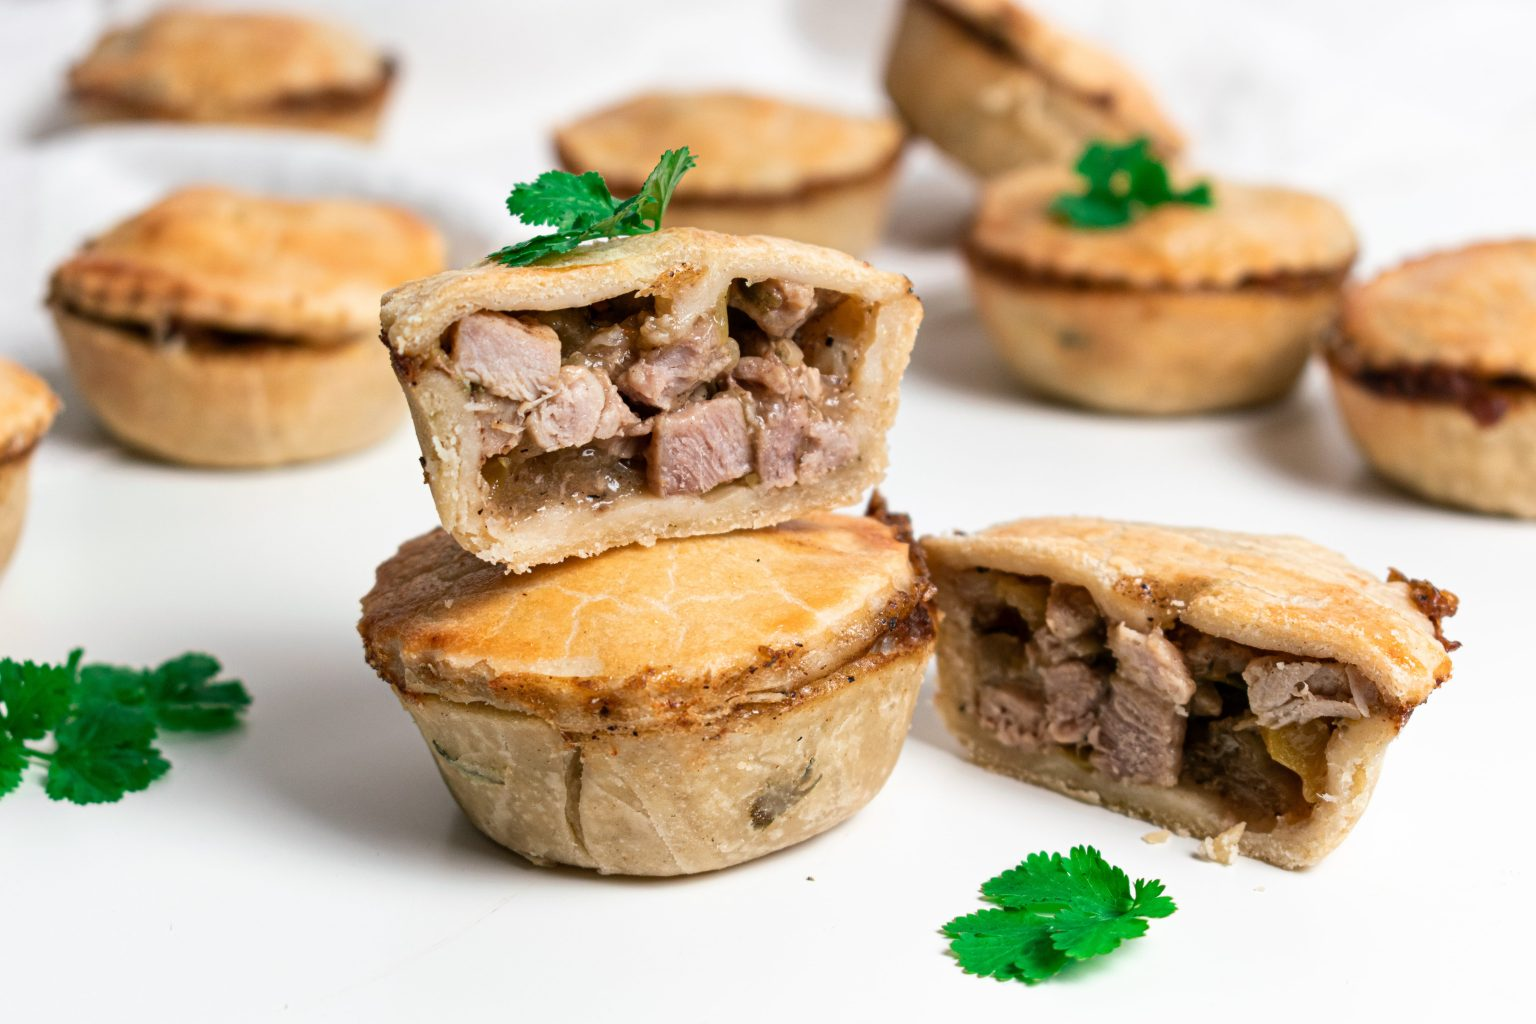 Stacked British pork pies with top pie cut into half to see pork filling